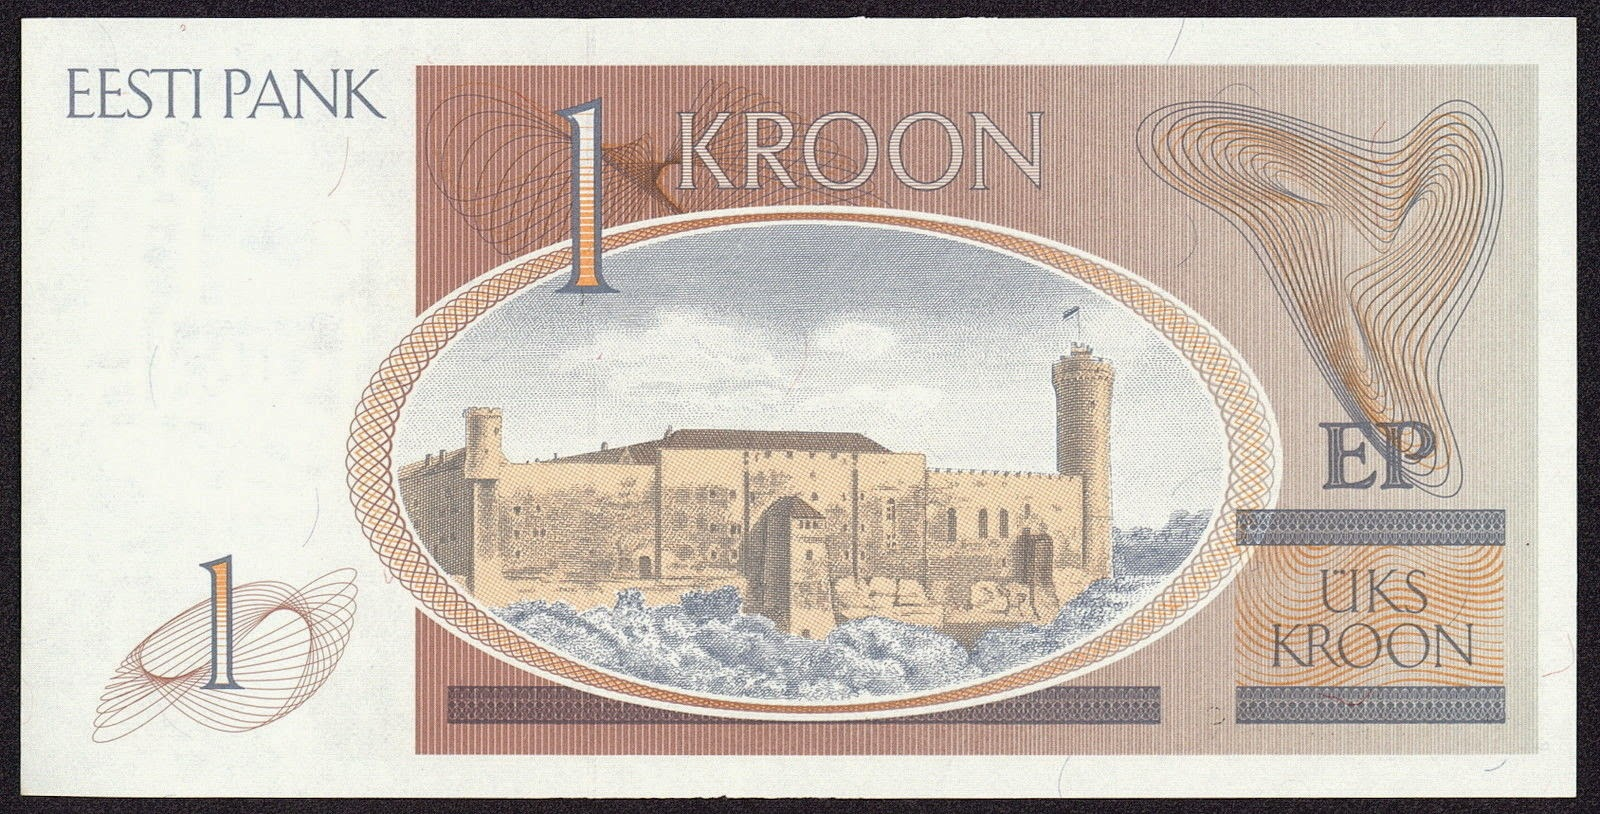 Estonia banknotes 1 kroon note, Toompea Castle and the Tall Hermann Tower